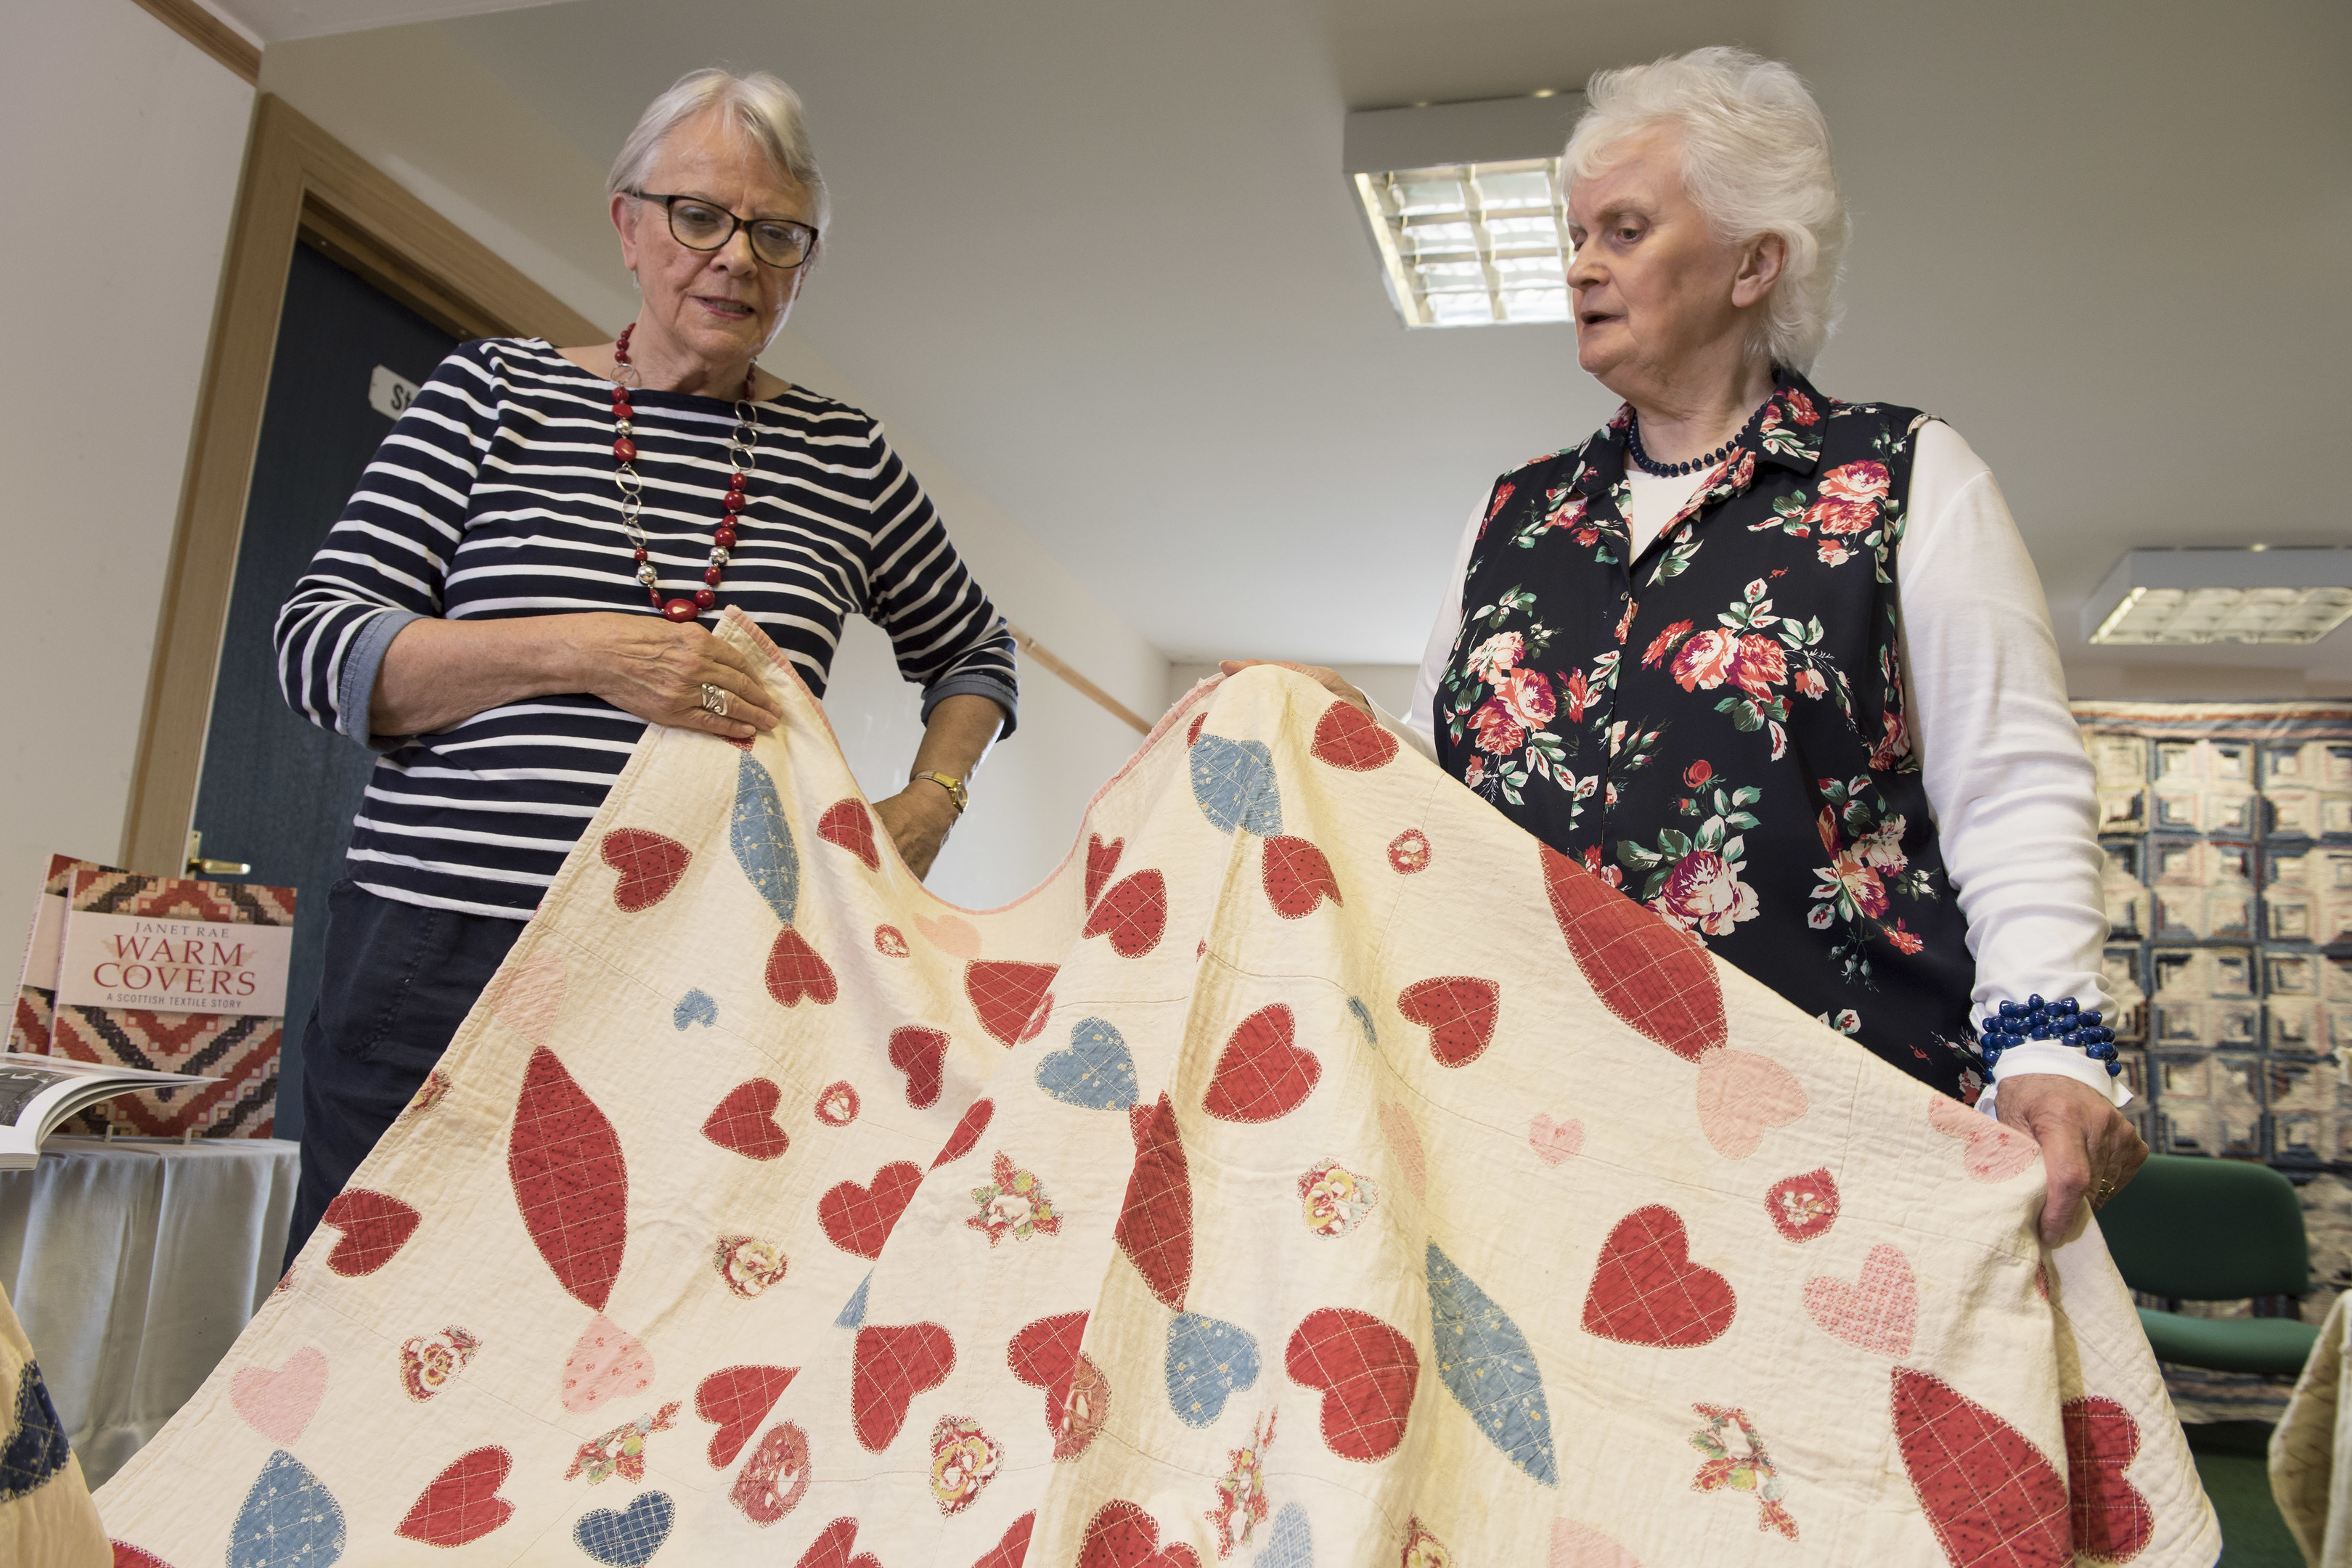 Author Janet Rae looks over Sandra Affleck's quilty at the Keeping the Thread event